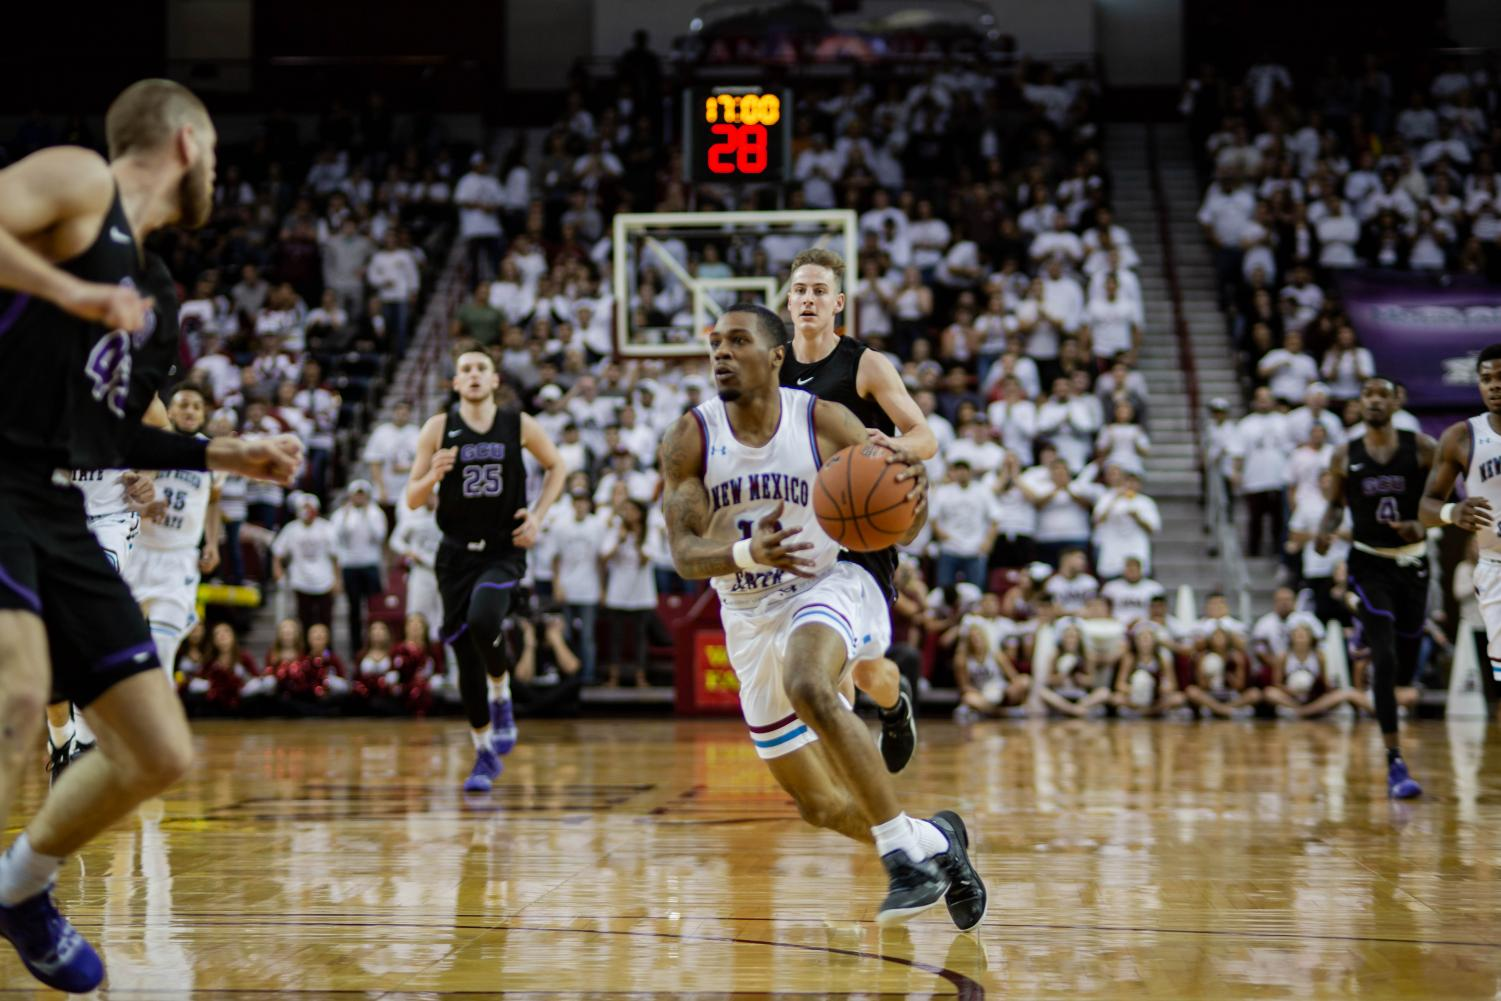 New Mexico State enters tonight's WAC Tournament Final with a 12-2 all-time record against Grand Canyon.